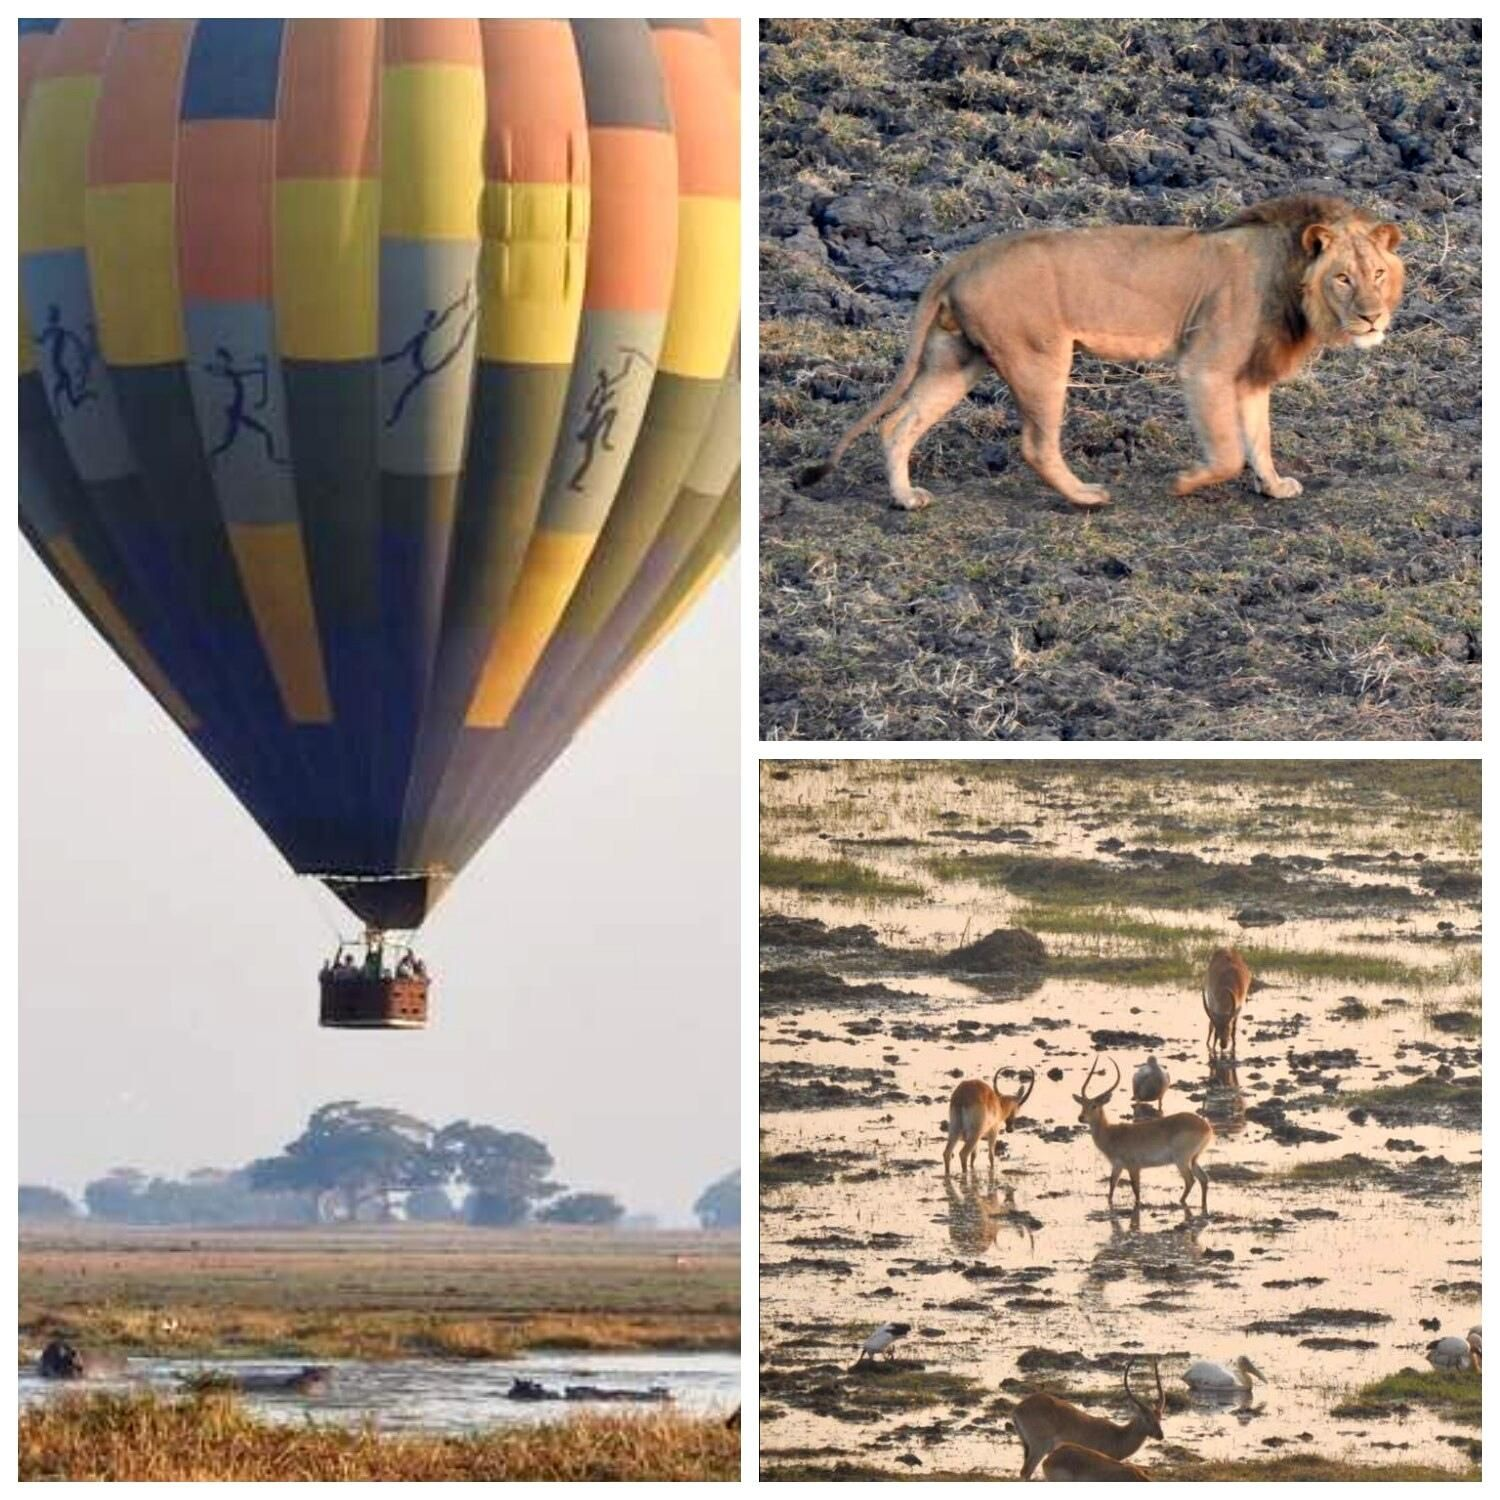 Our Busanga Plains hot air ballooning season is off to a